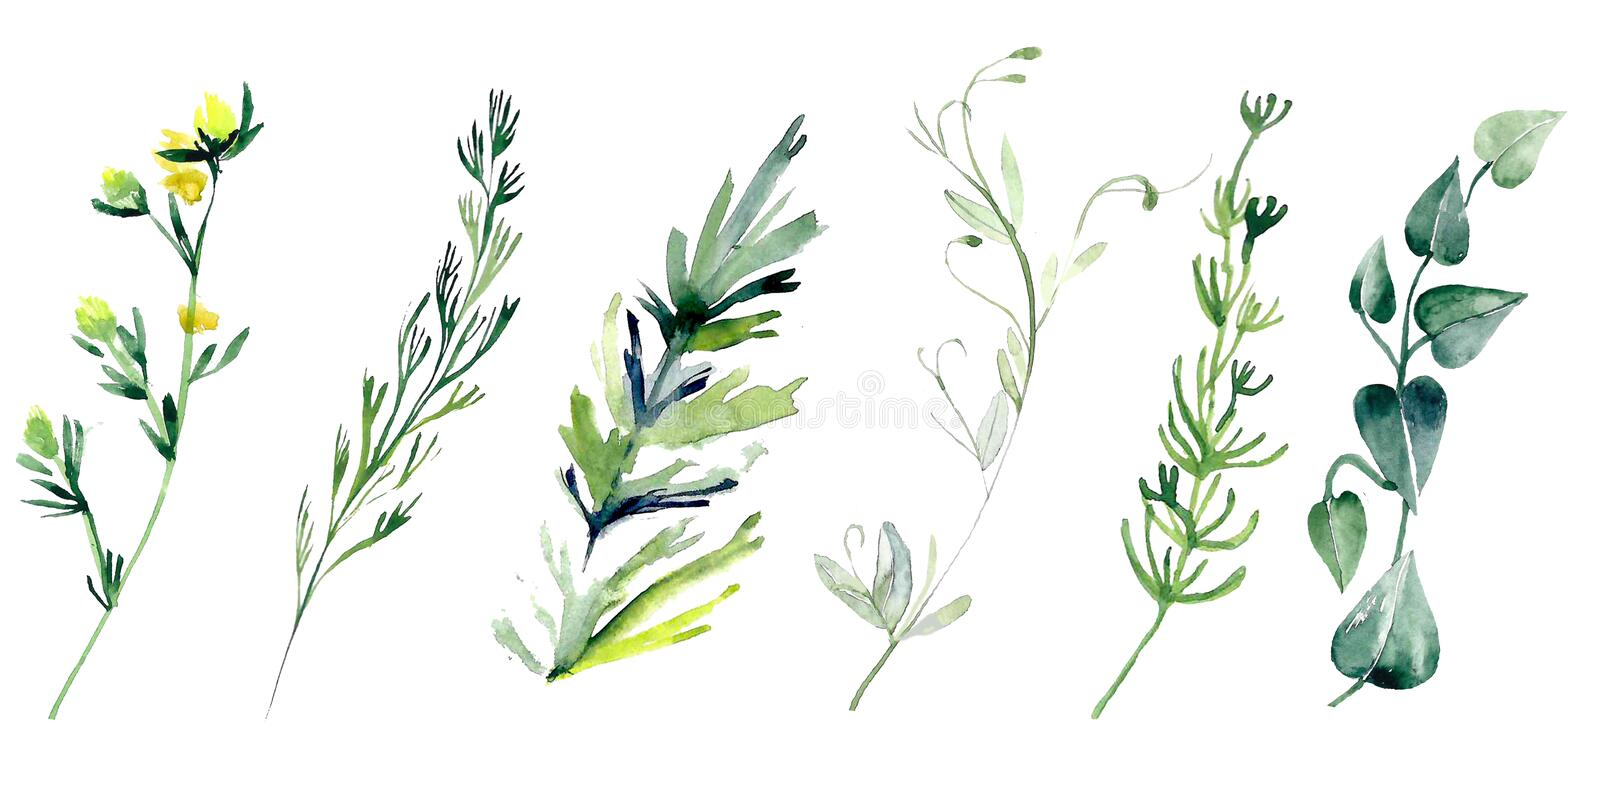 Hand drawn watercolor illustrations isolated on white background. royalty free stock photo